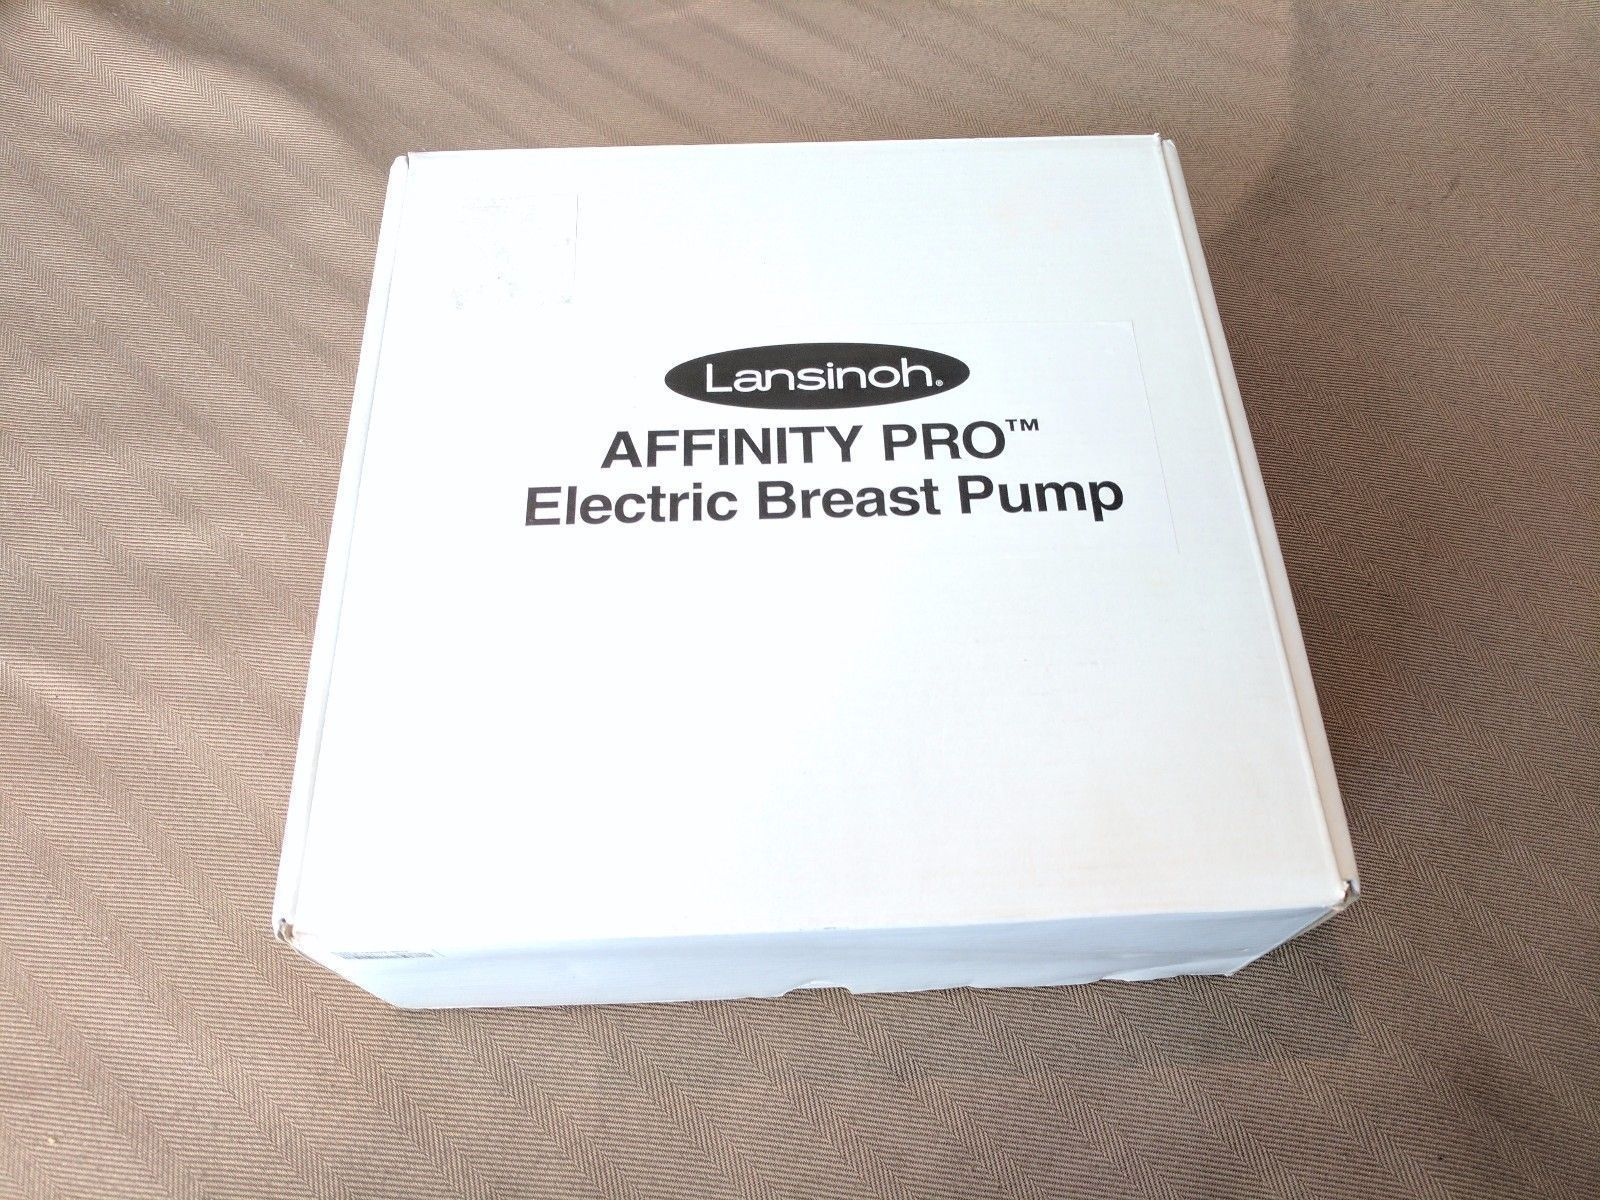 Lansinoh Affinity Pro Breast Pump 2 Customer Reviews And 1 Listing